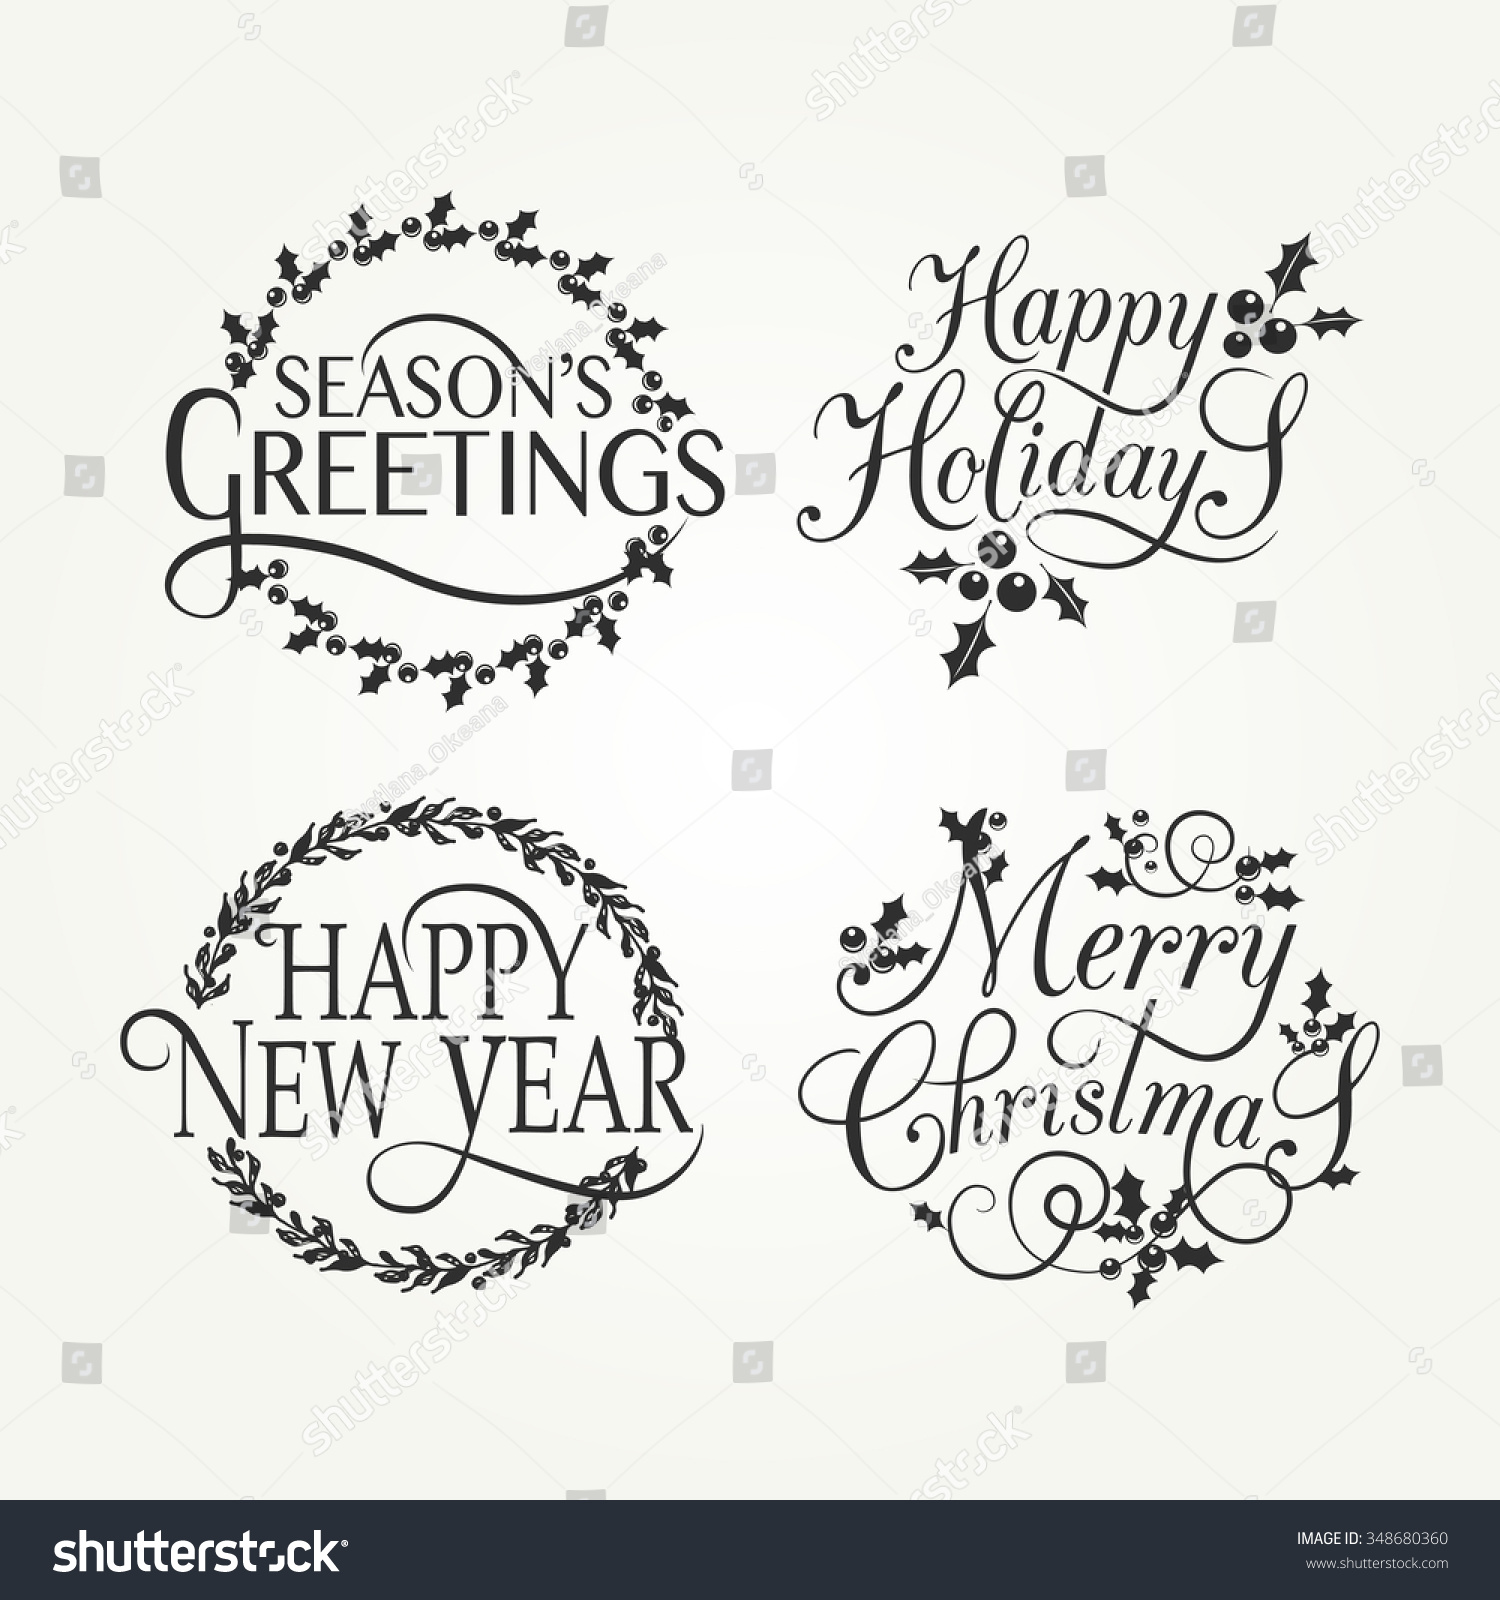 happy holidays template happy new year 2017 email template stock ...